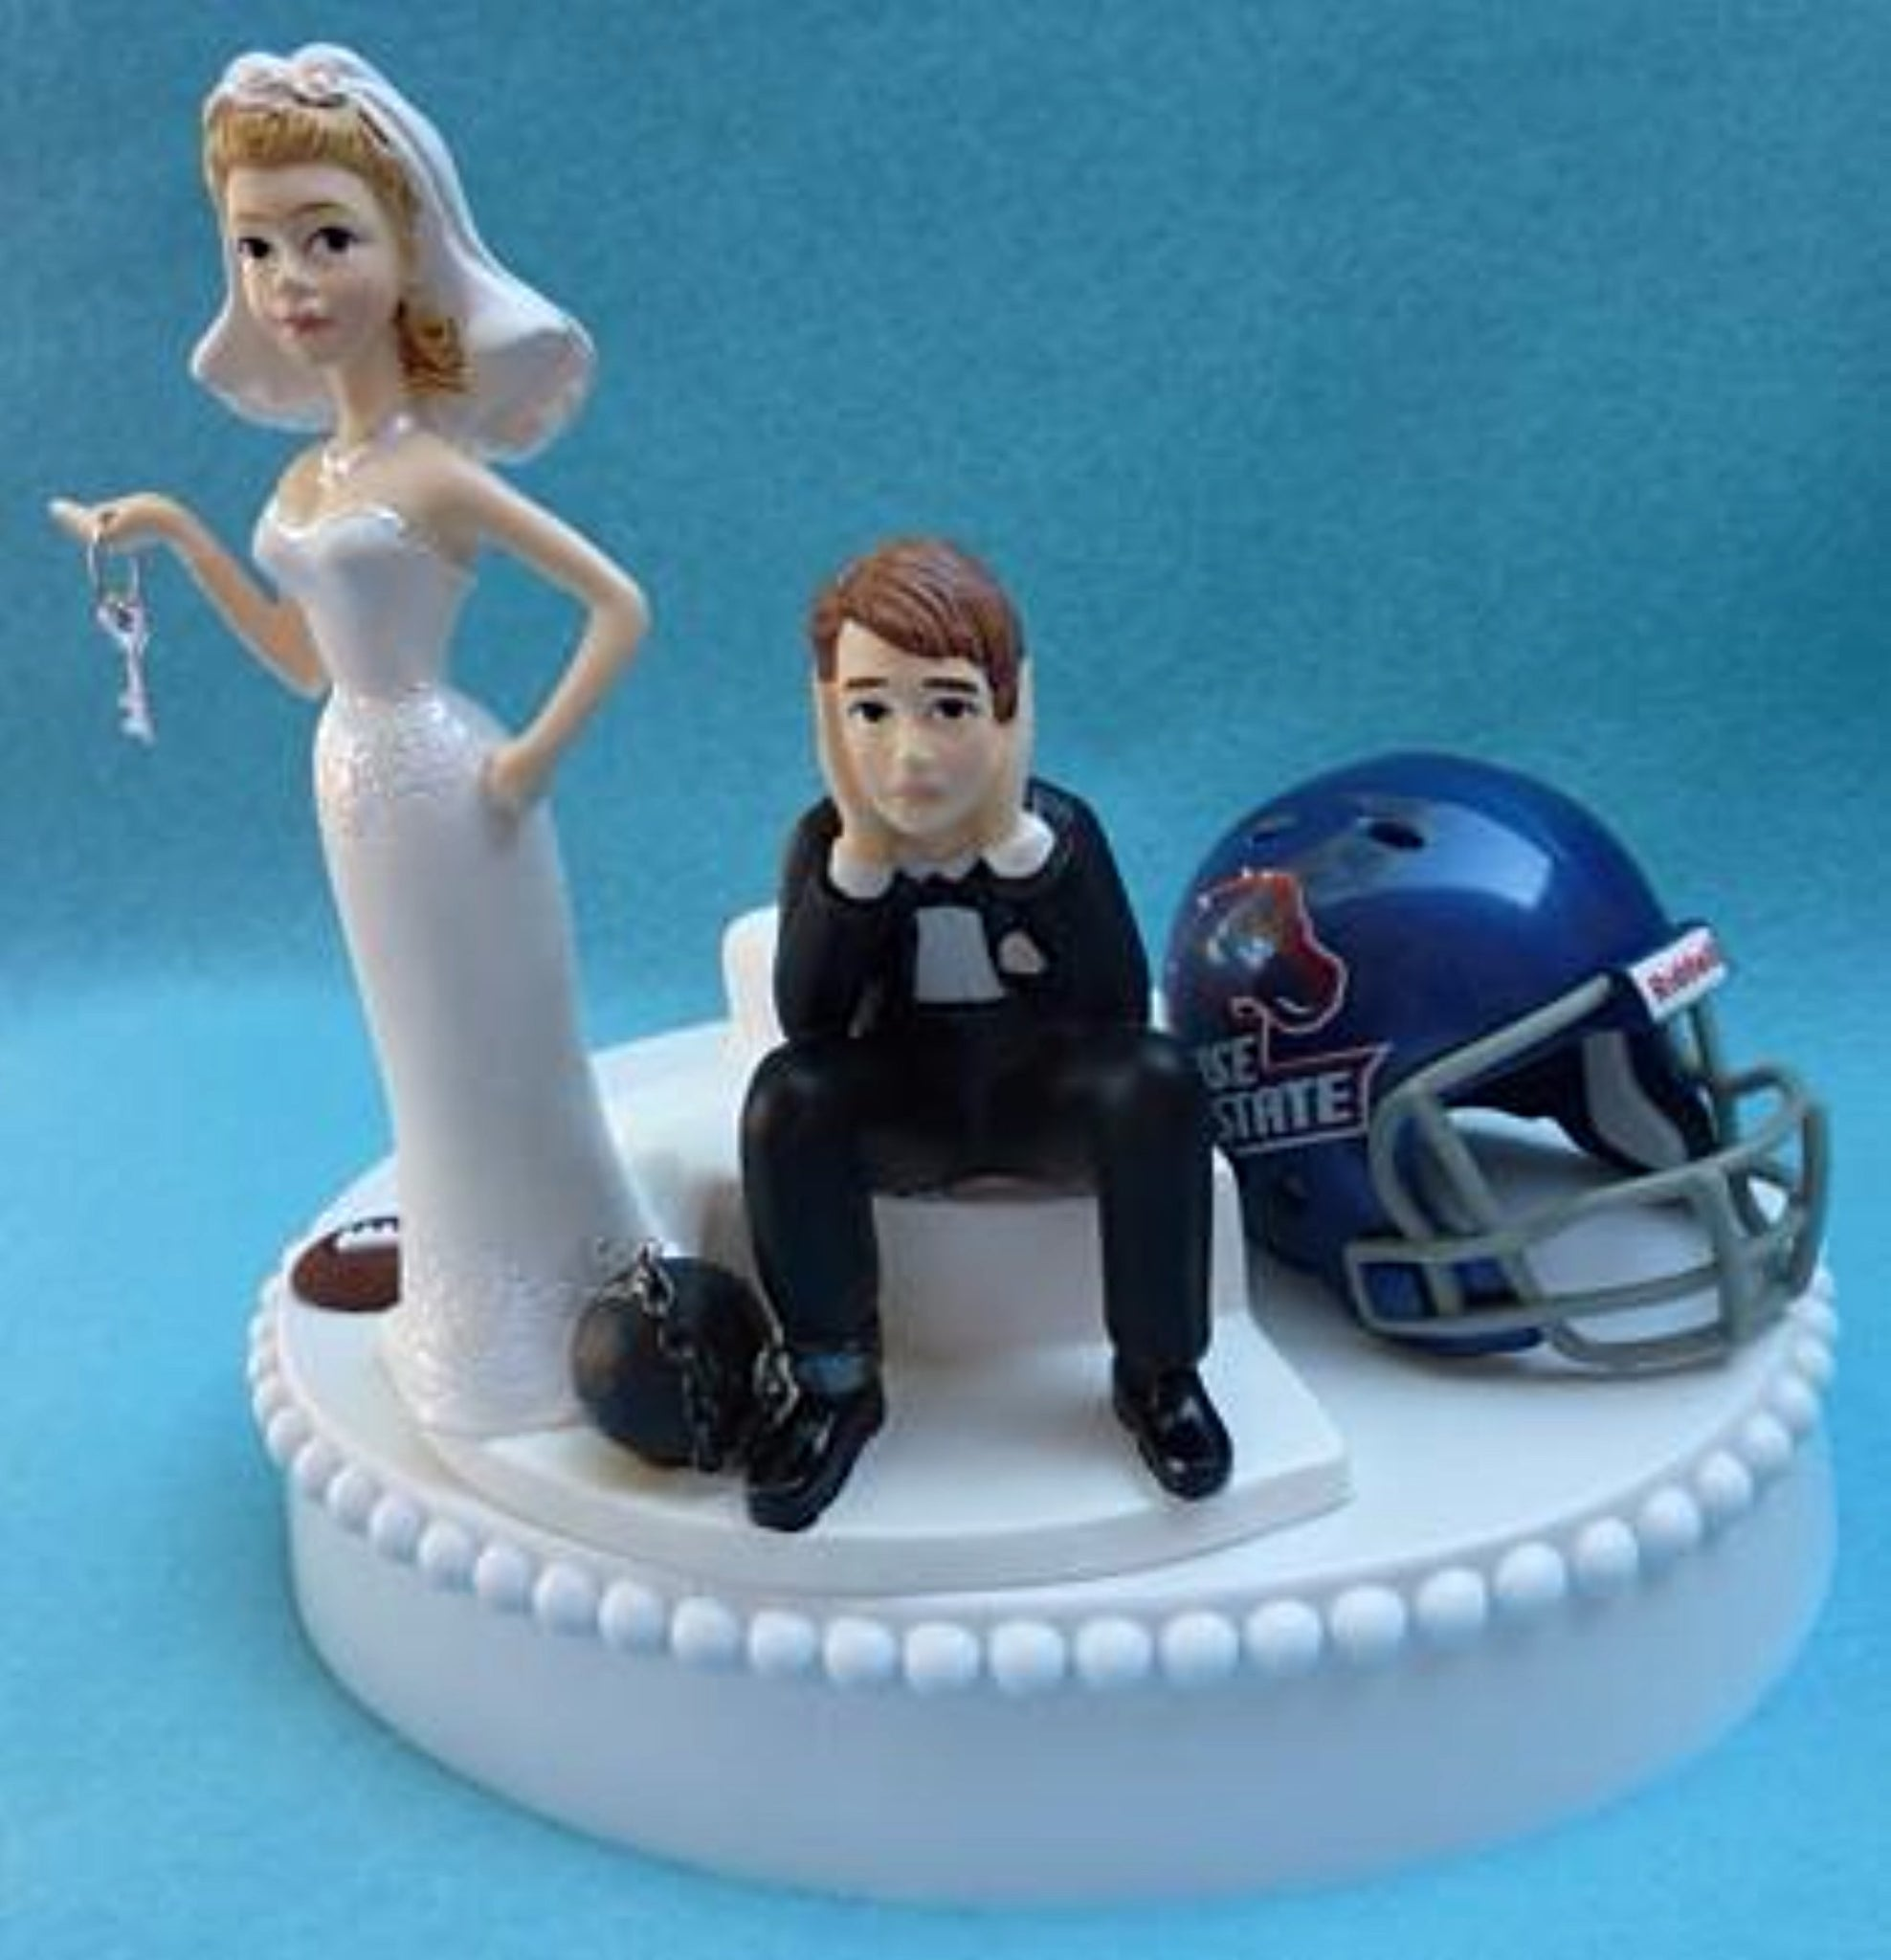 Boise St. wedding cake topper BSU Broncos football bride sad groom humorous ball chain key funny Fun Wedding Things